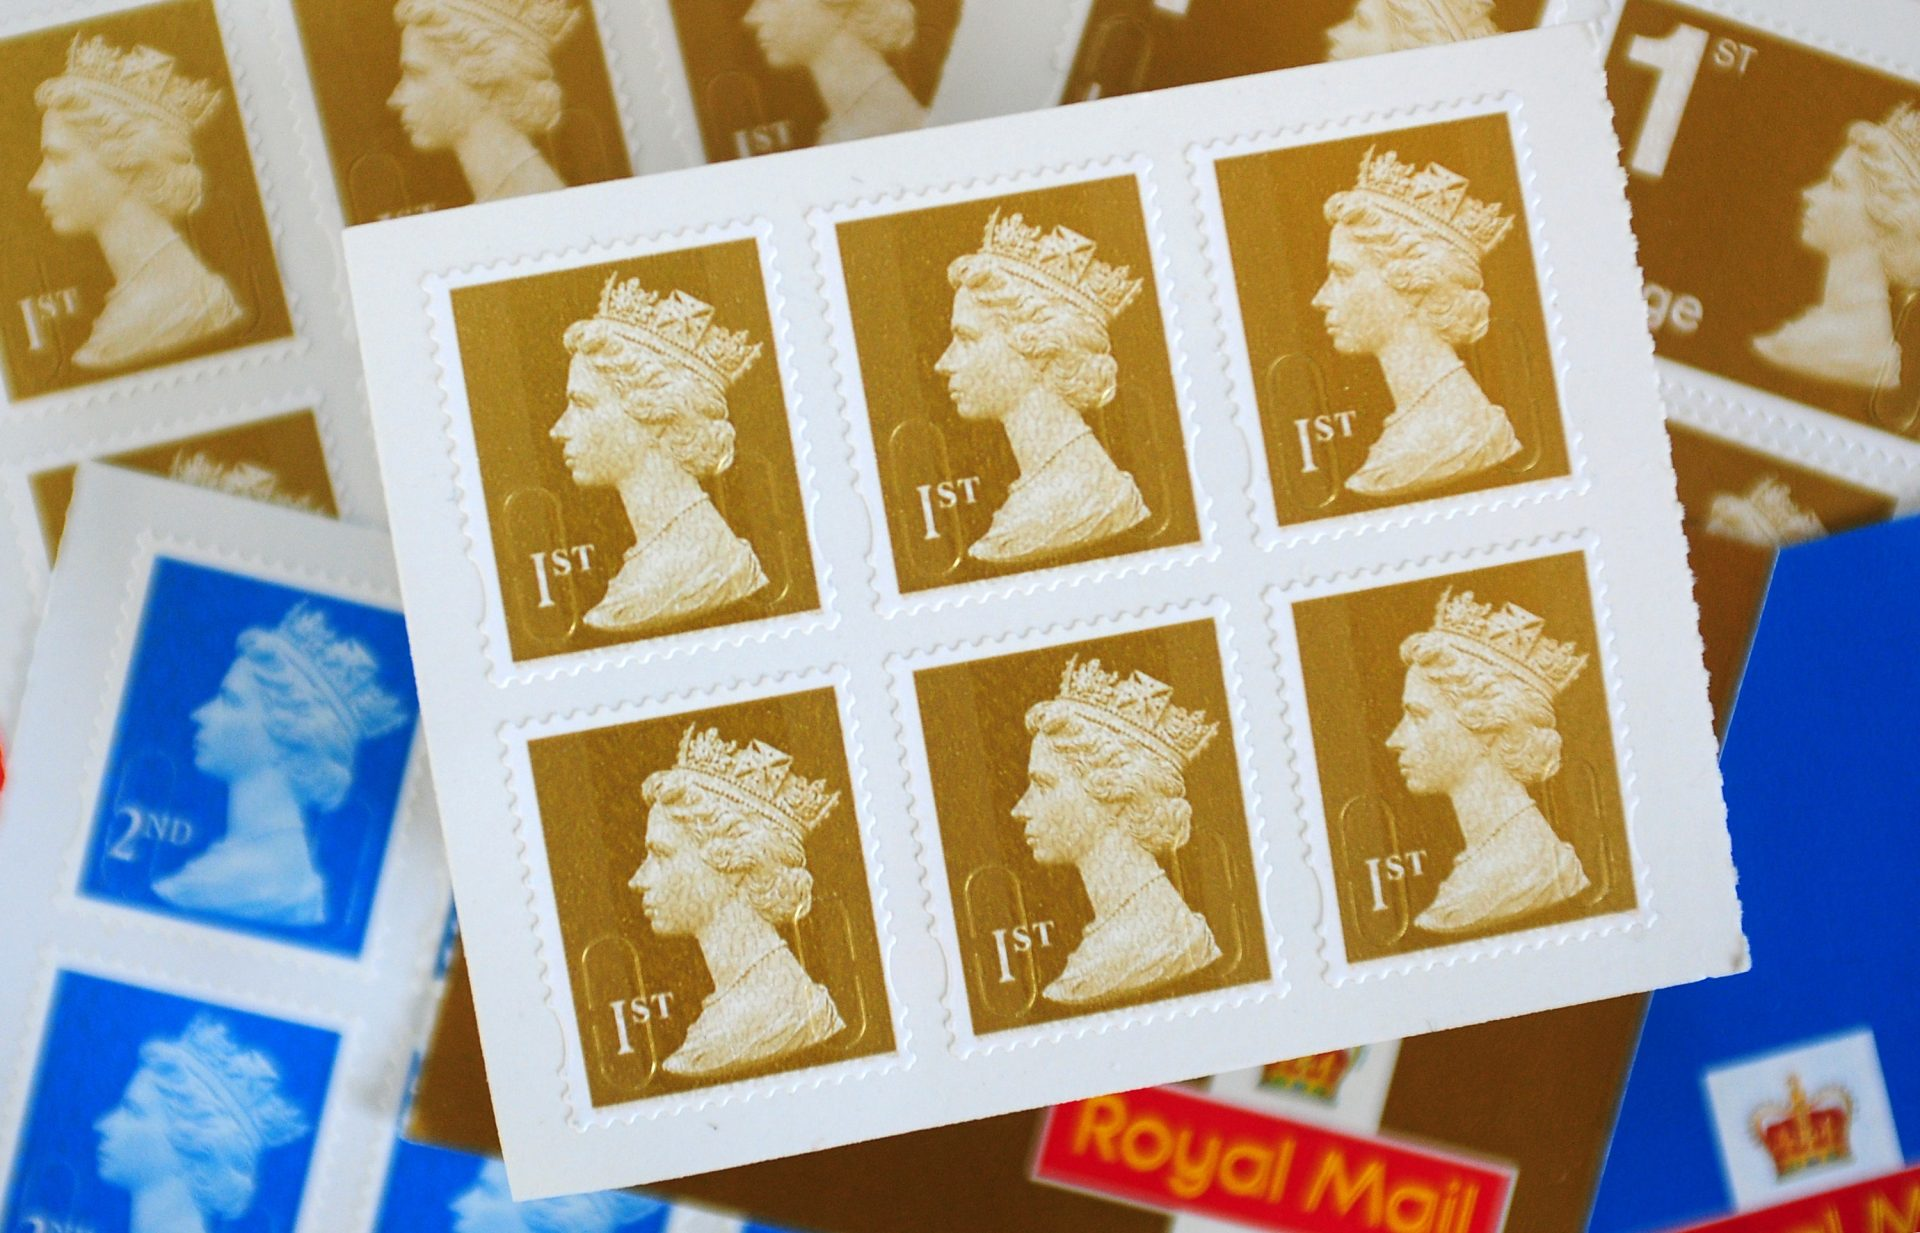 Royal Mail to increase price of stamps